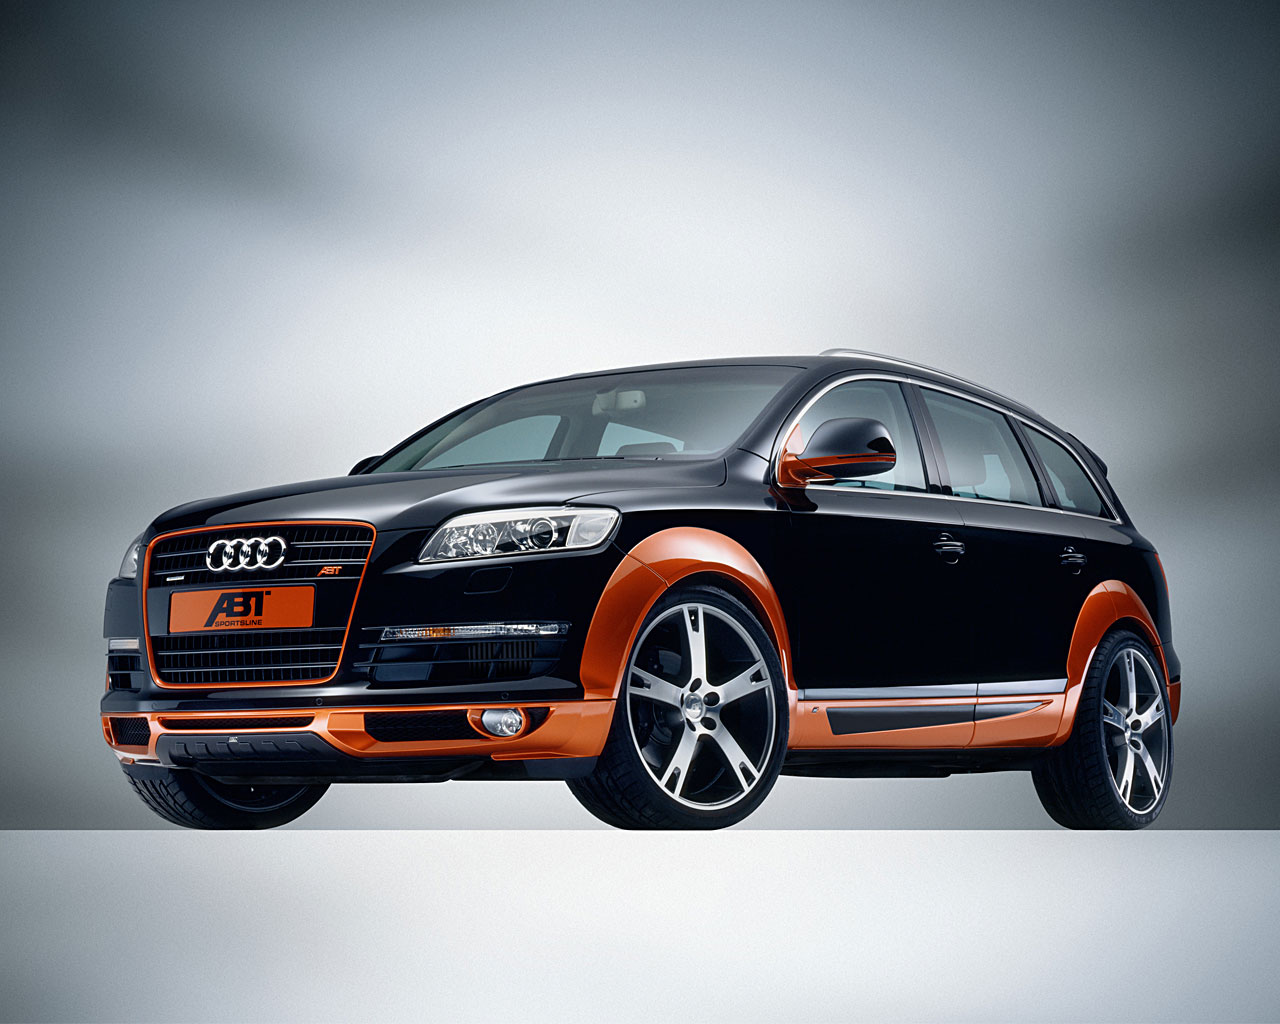 audi q7 abt sport s line tuning auto titre. Black Bedroom Furniture Sets. Home Design Ideas